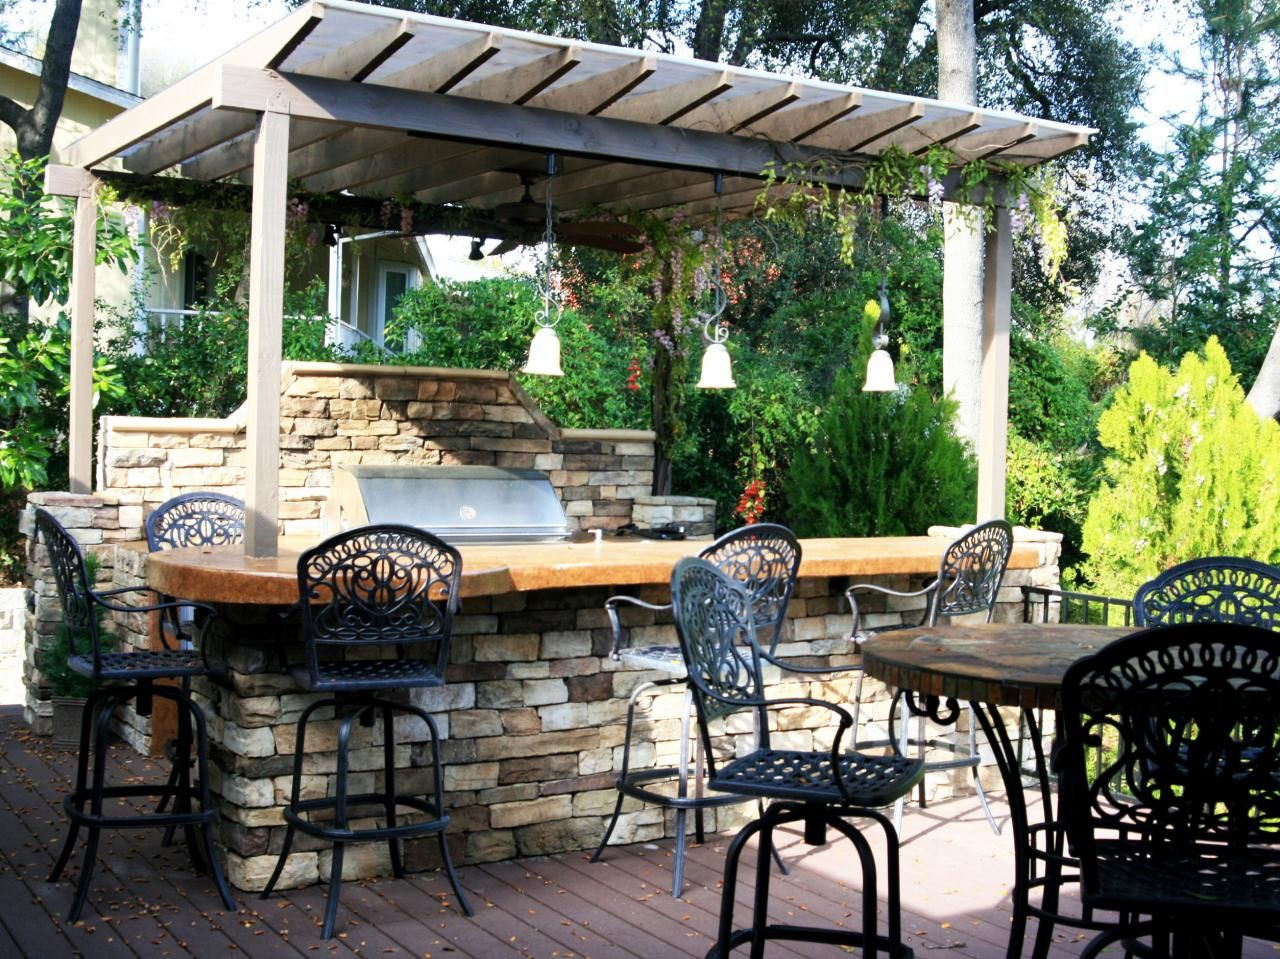 outdoor kitchen ideas on a budget pictures tips ideas decks backyards and pictures on outdoor kitchen ideas on a budget id=95736